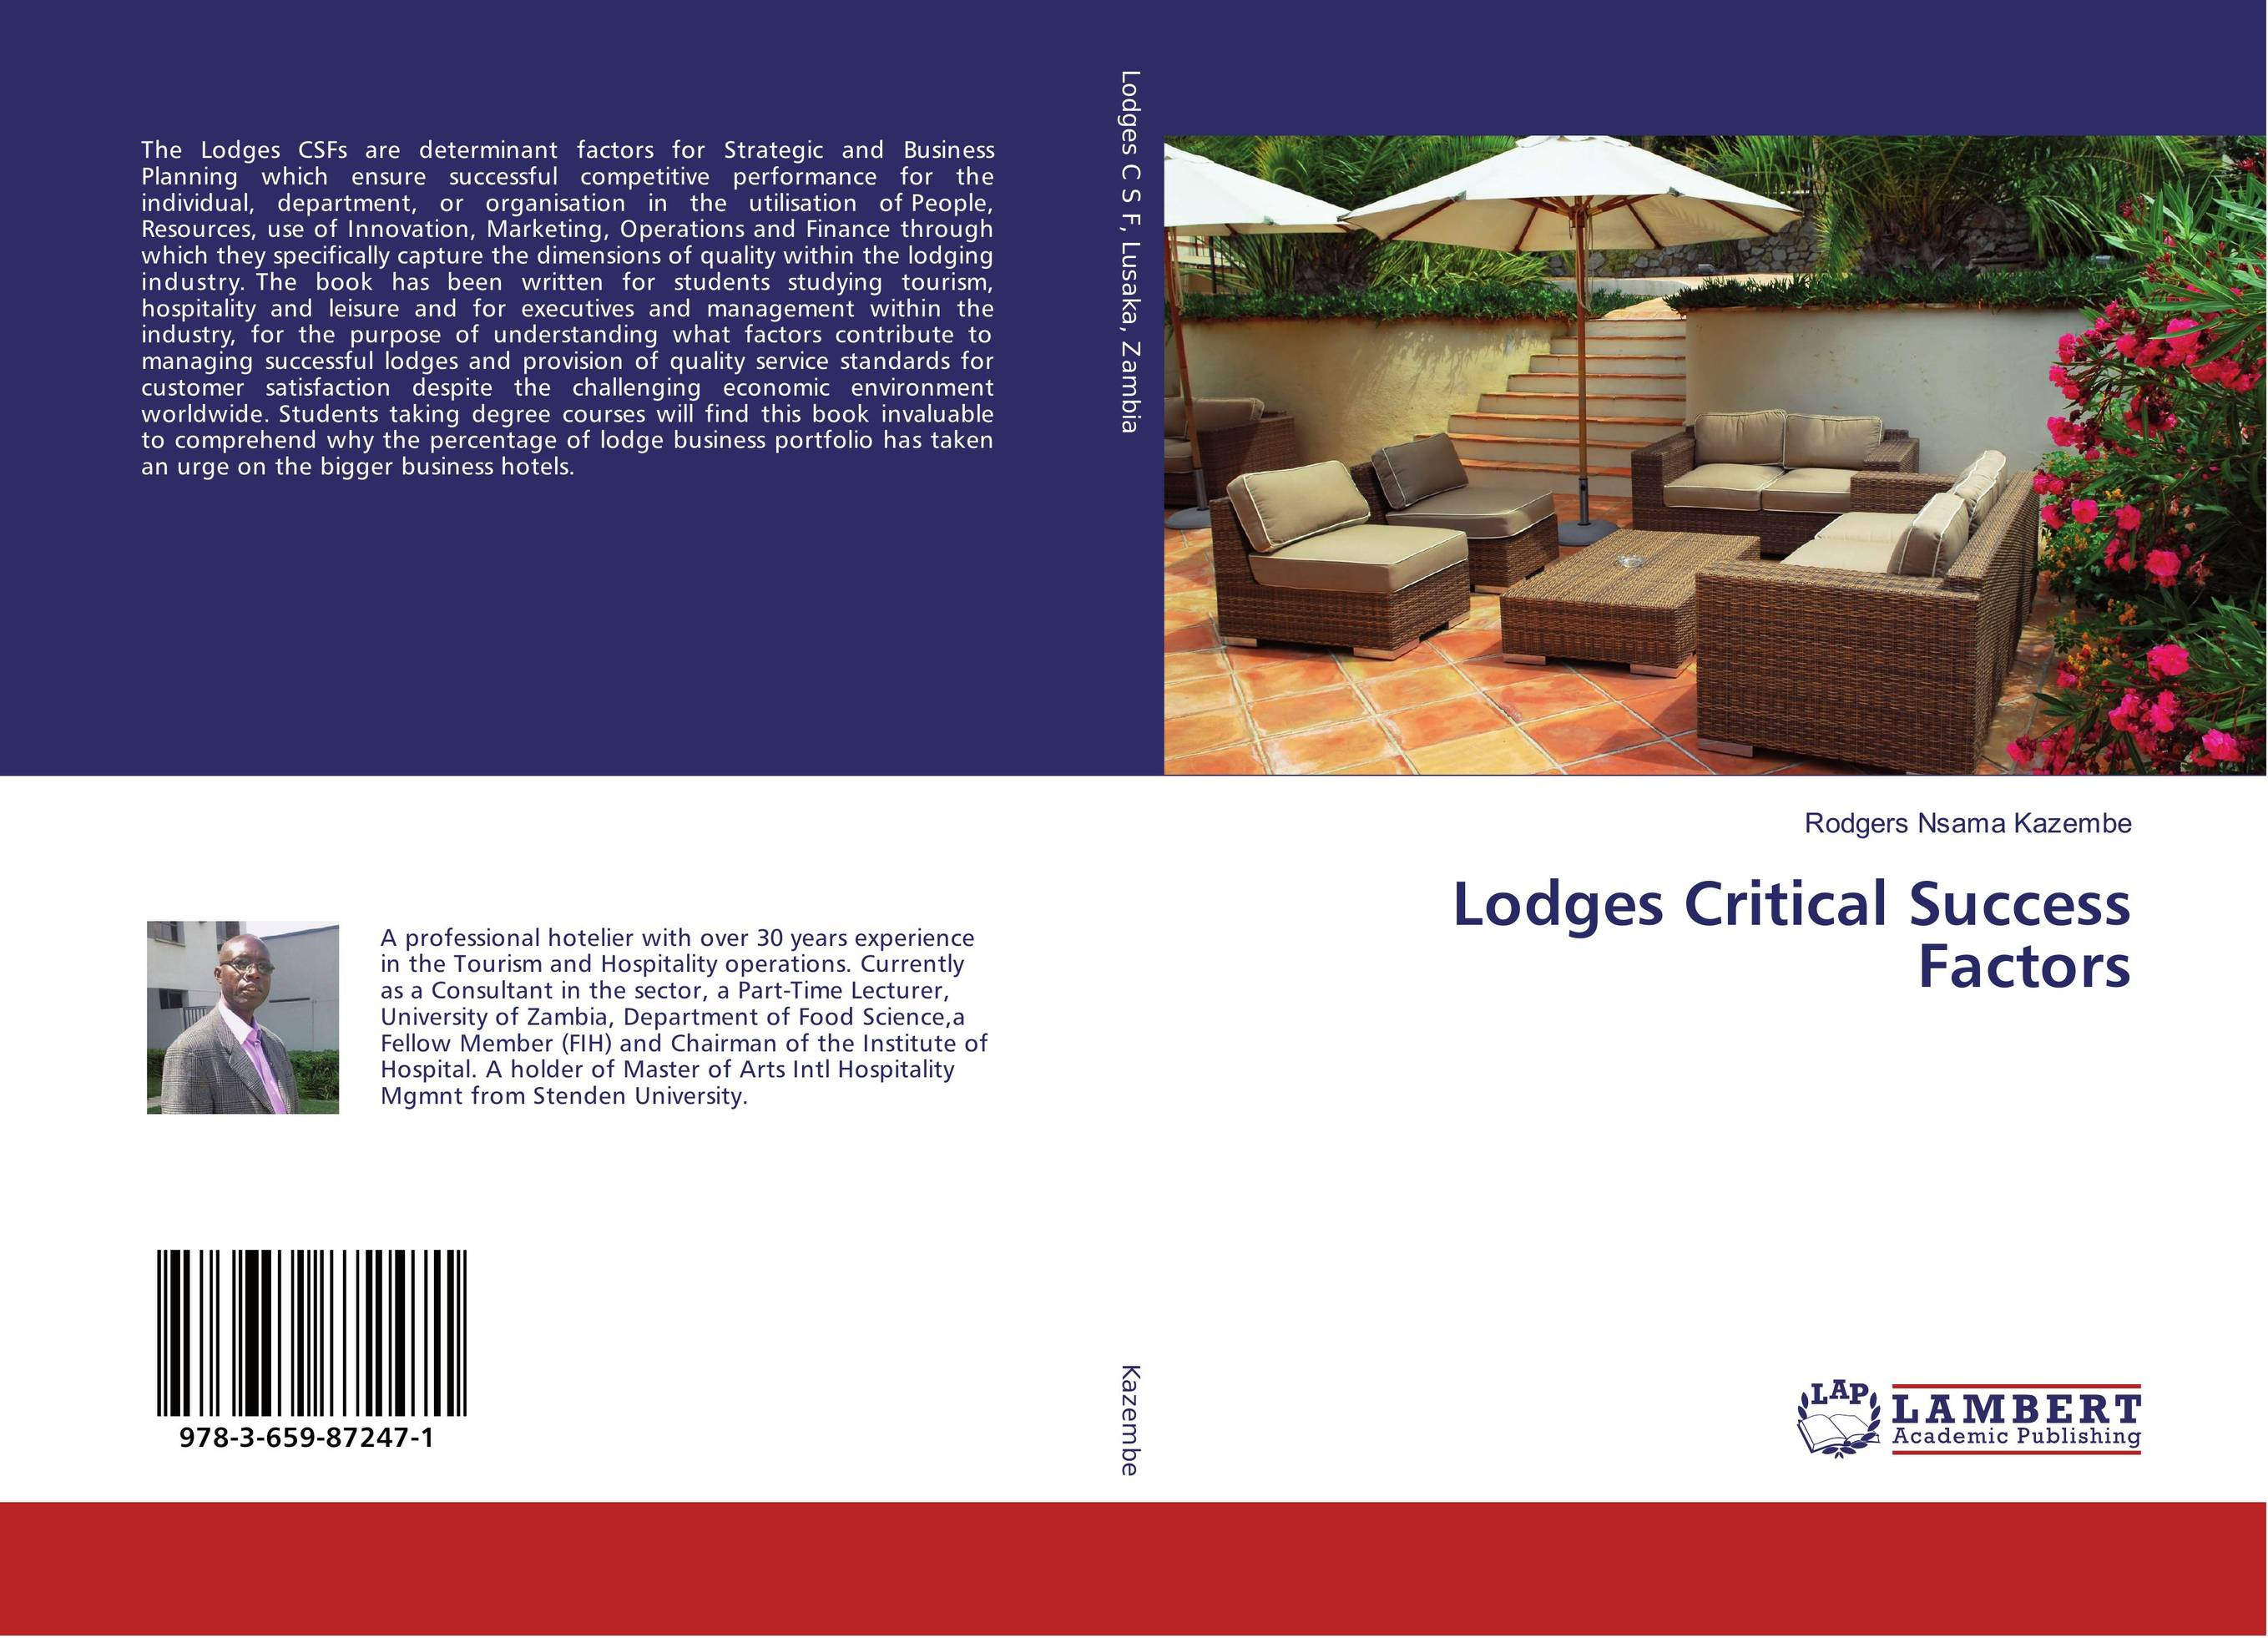 Lodges Critical Success Factors managing the store